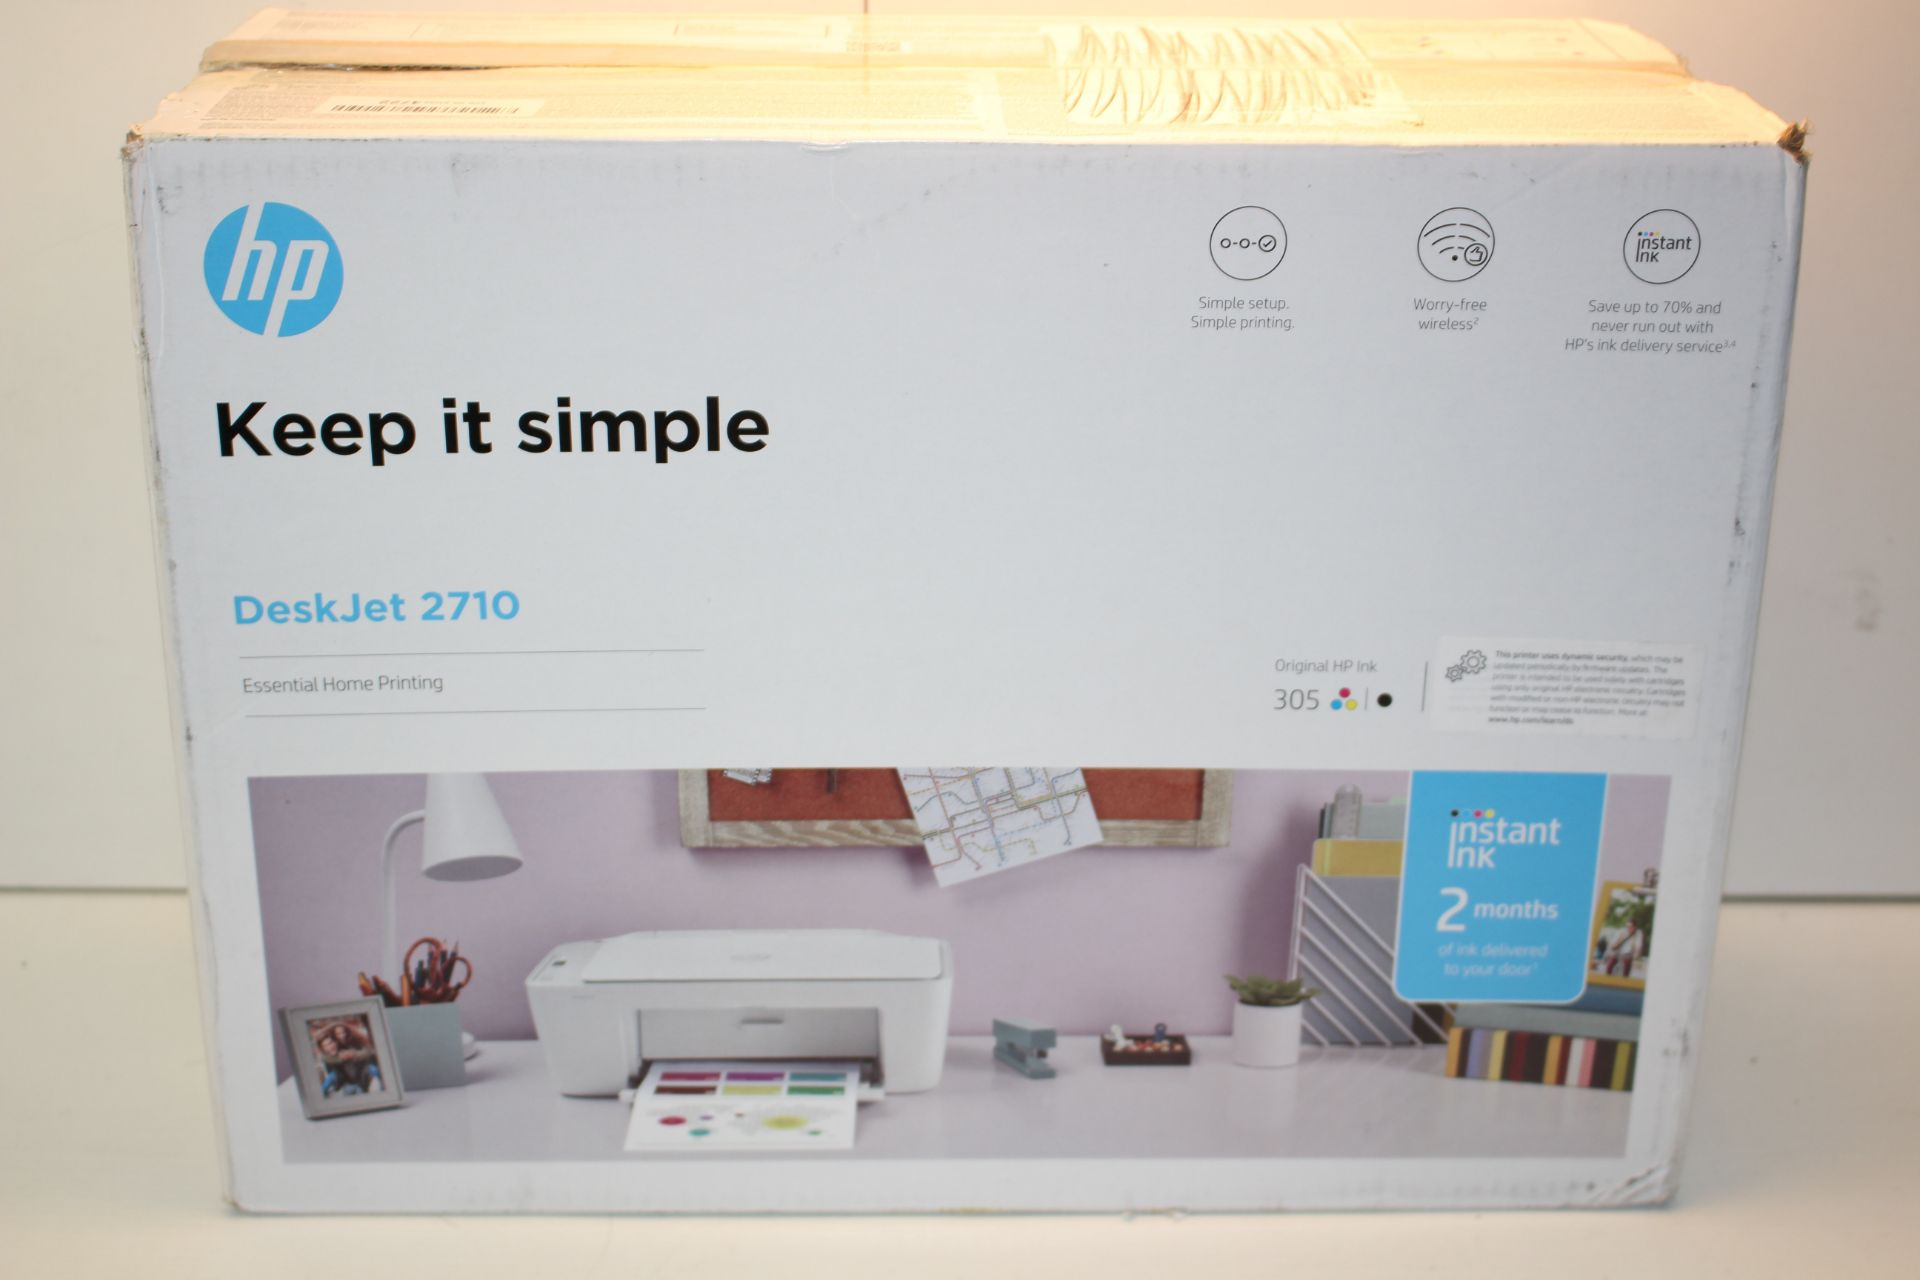 BOXED HP DESKJET 2710 ESSENTIAL HOME PRINTING RRP £64.99Condition ReportAppraisal Available on